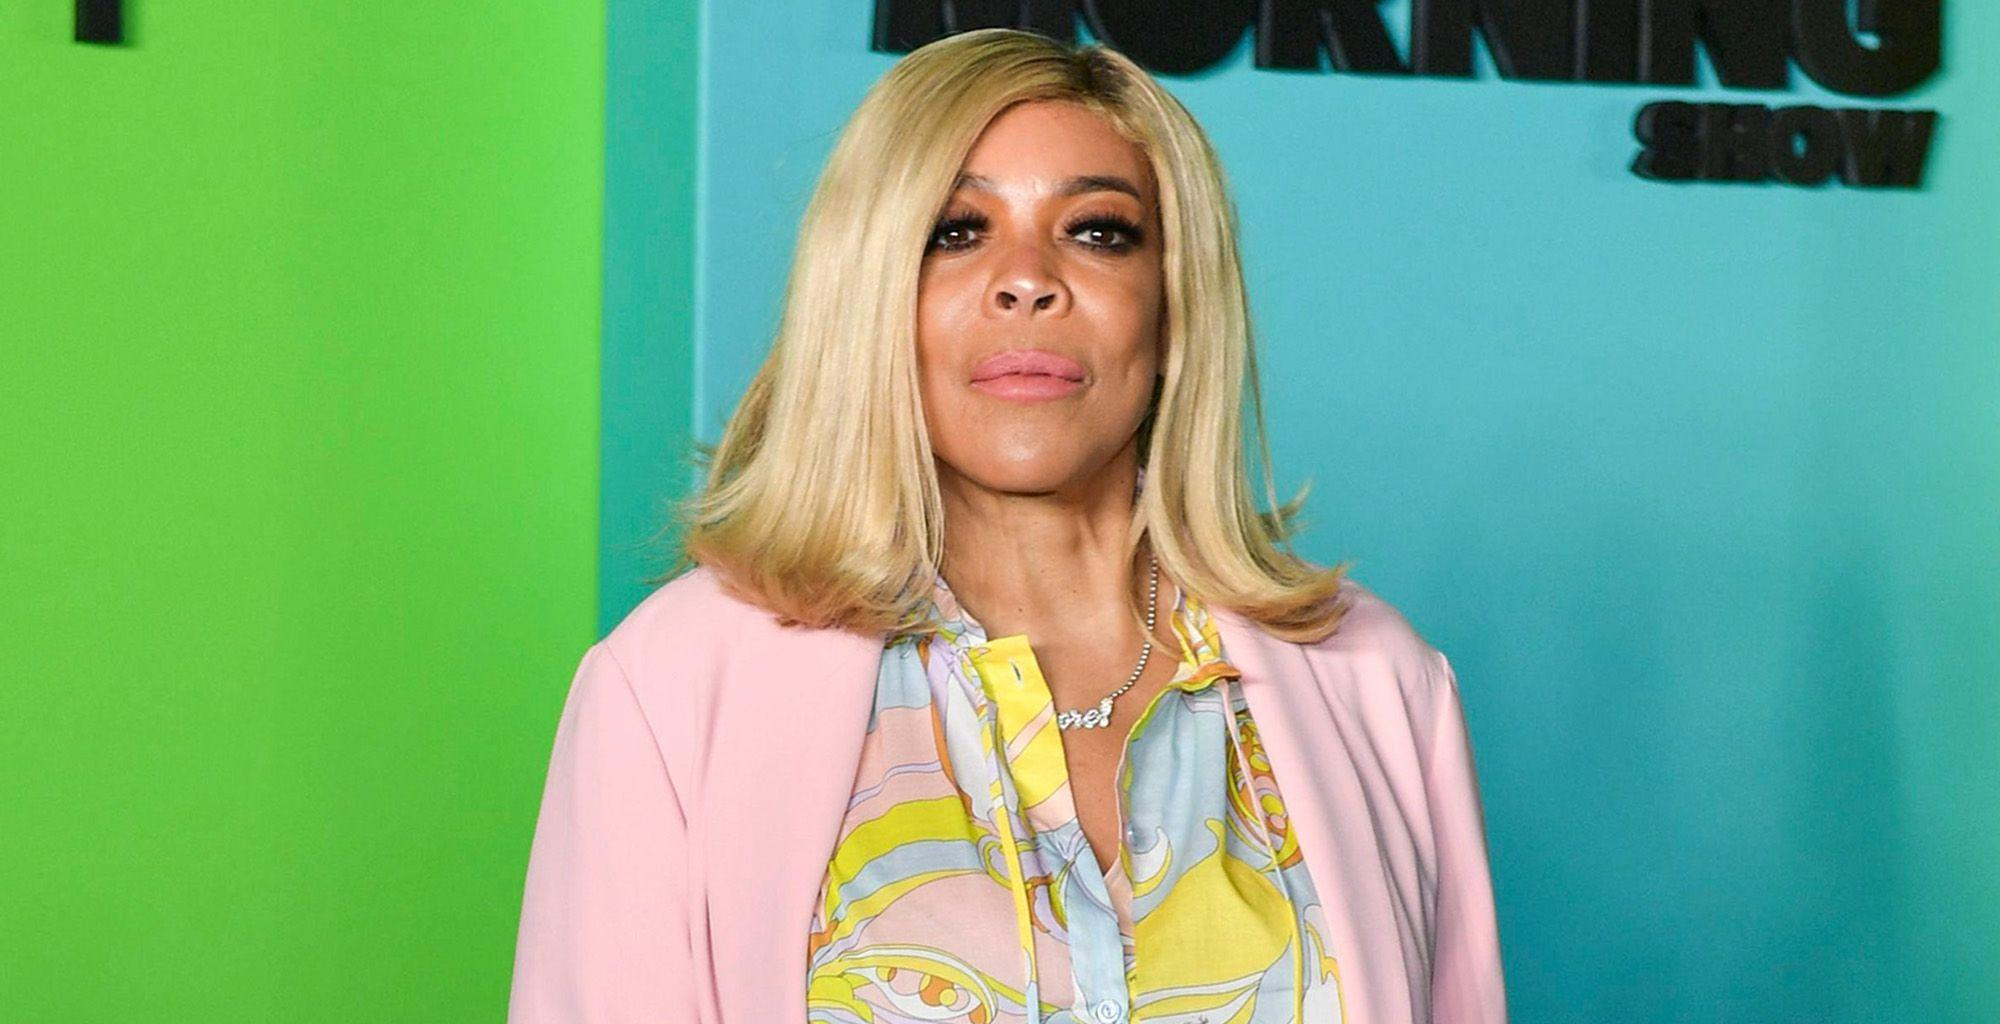 Wendy Williams' Show Return Is Pushed Back - She Still Has Medical Problems